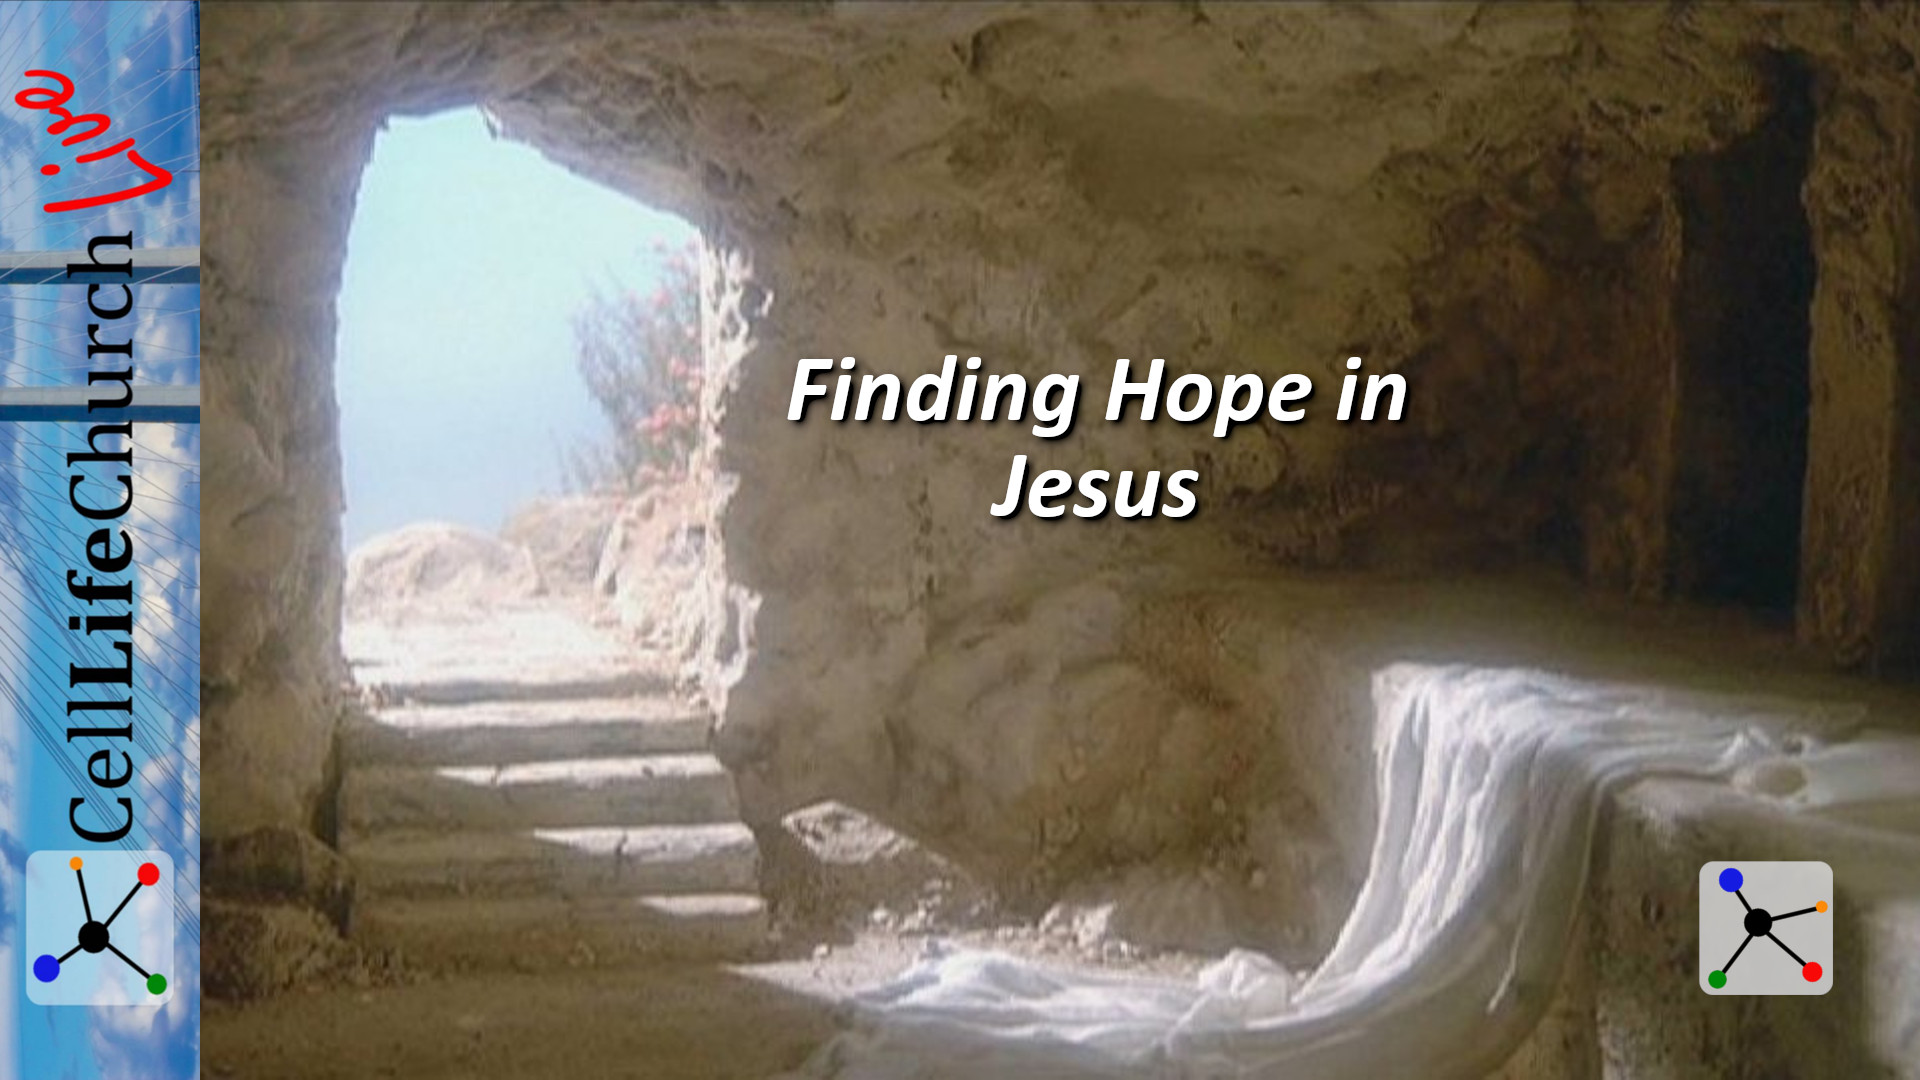 Finding Hope in Jesus